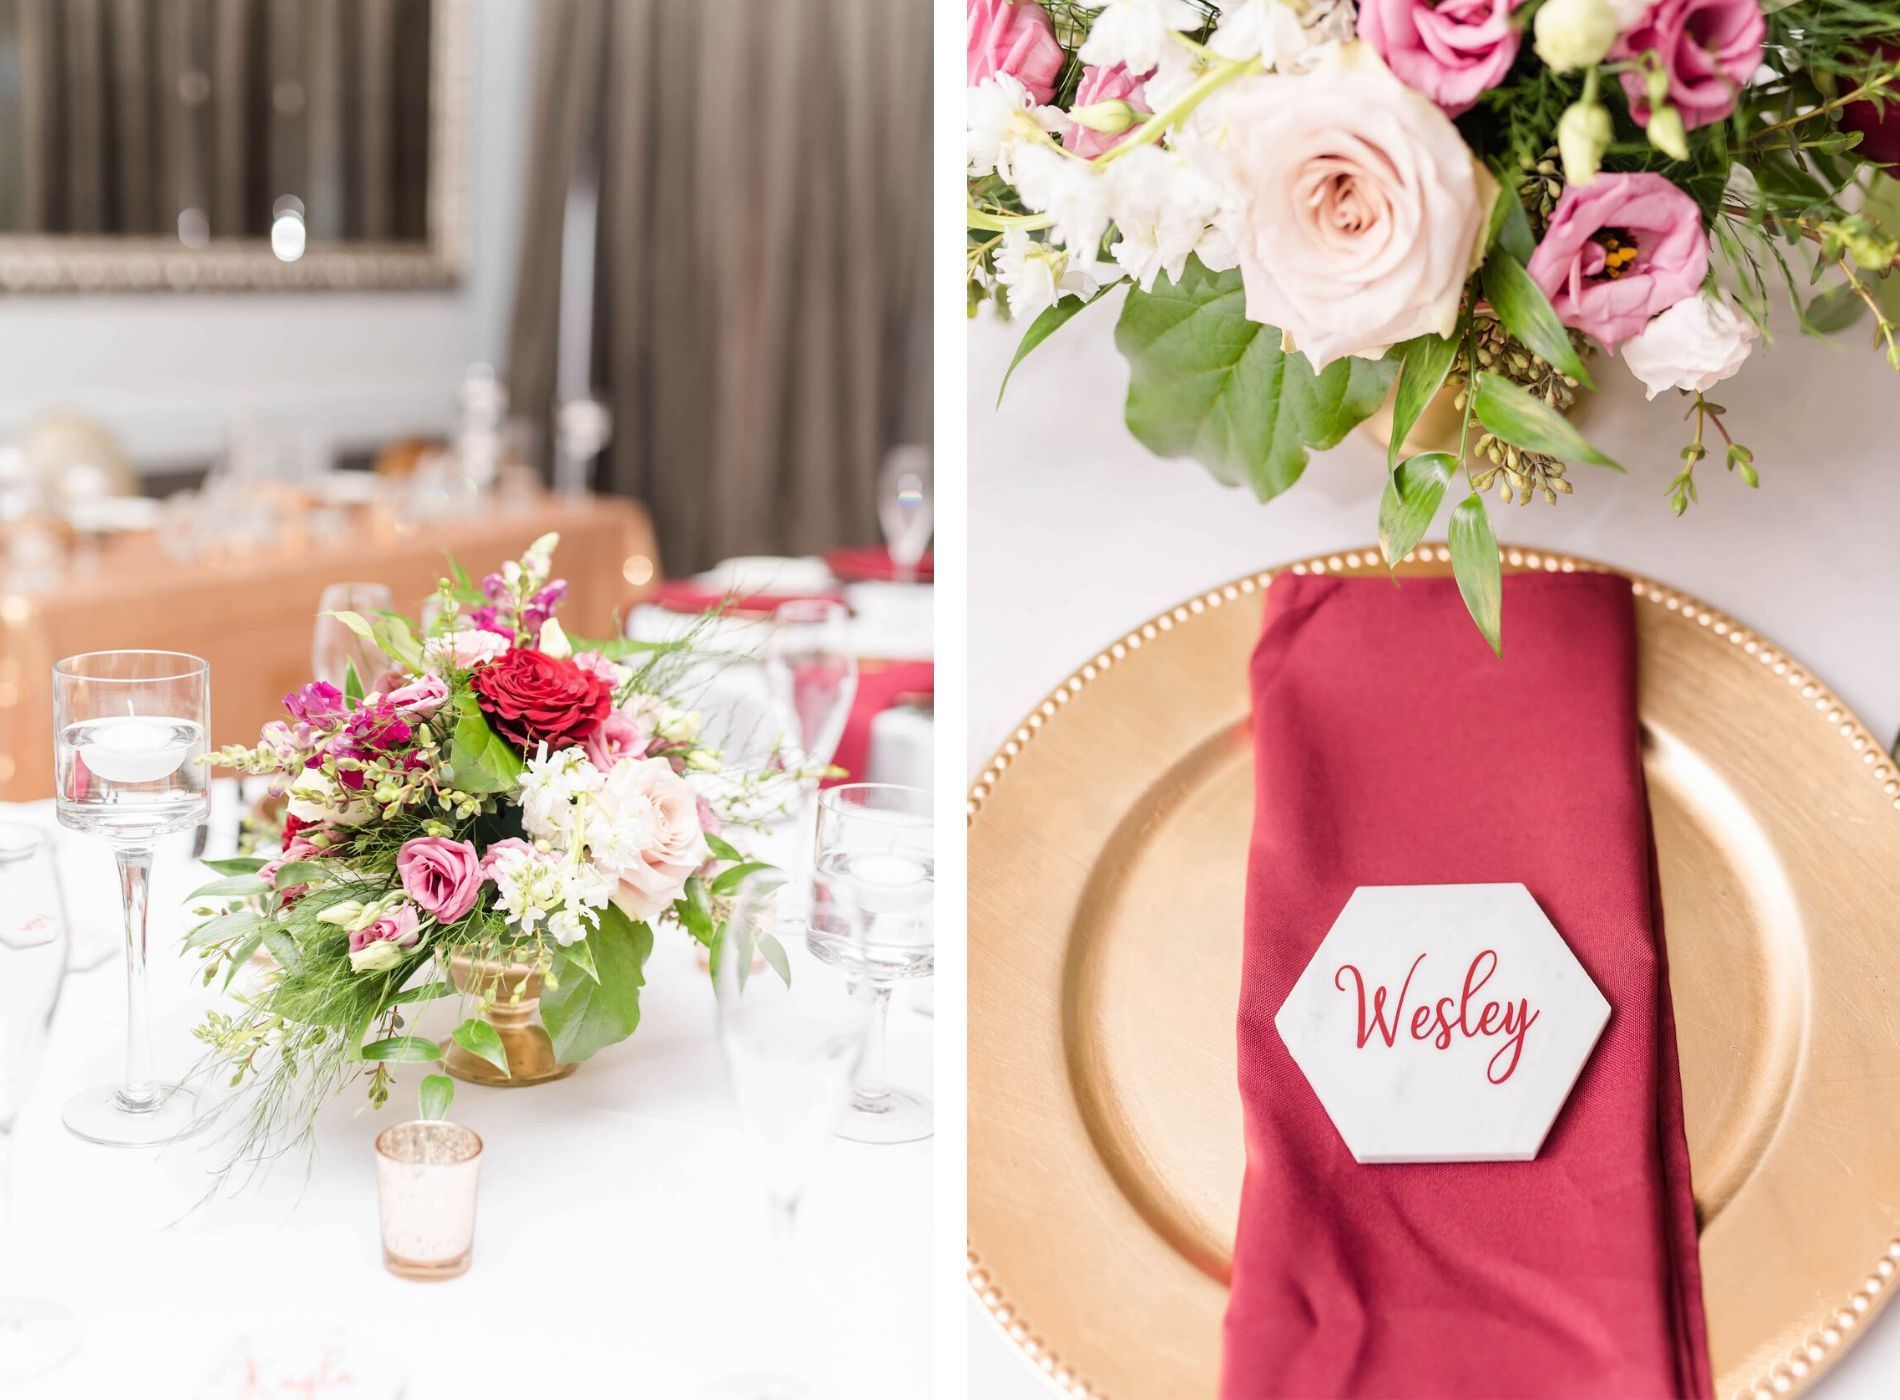 Indoor Ballroom Wedding Reception Table with White Linen Tablecloth and Gold Pedestal Centerpieces with Blush Pink Dusty Rose and Burgundy Roses and Greenery   Wedding Place Setting with Gold Charger Plate and Burgundy Napkin with Geometric Tile Calligraphy Place Card